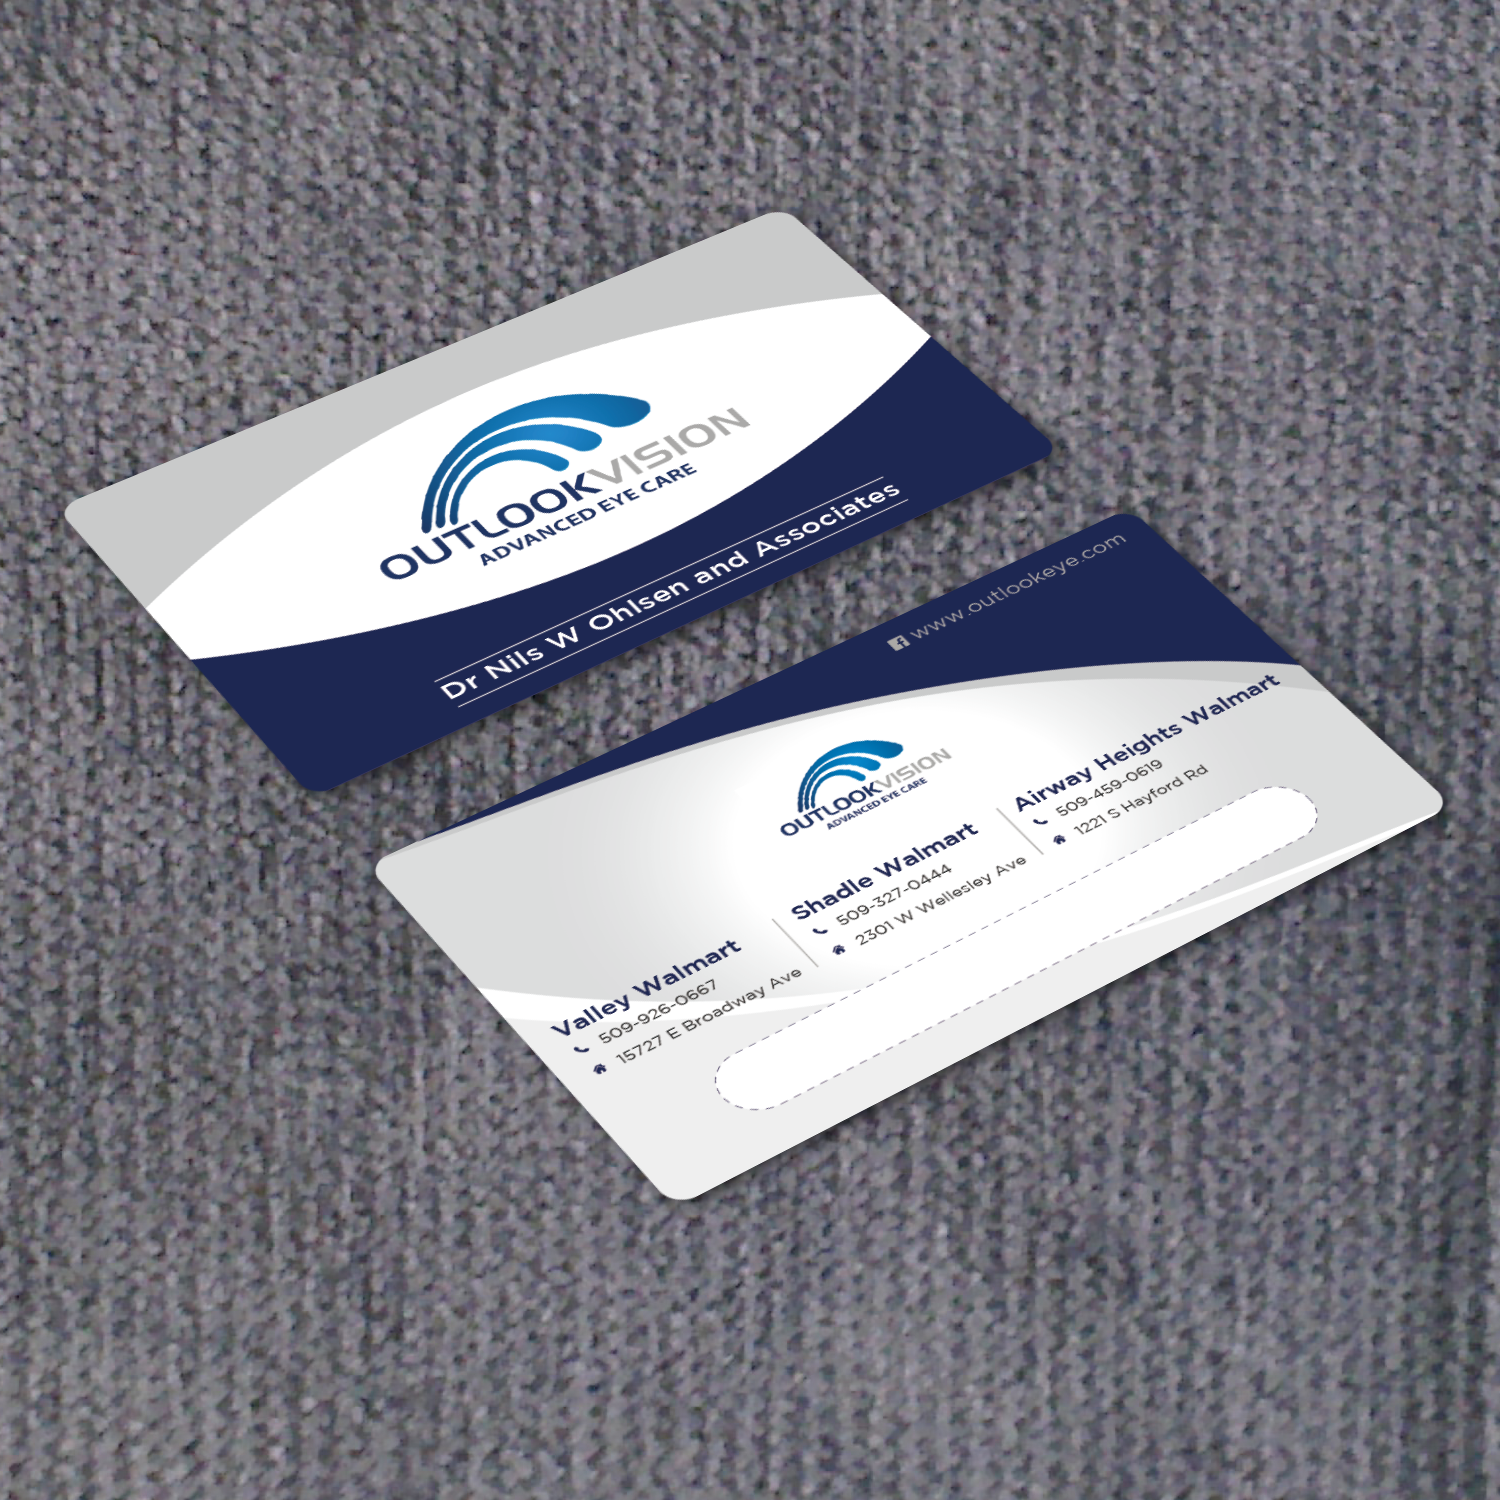 Modern, Bold, Healthcare Business Card Design for Outlook Vision by ...